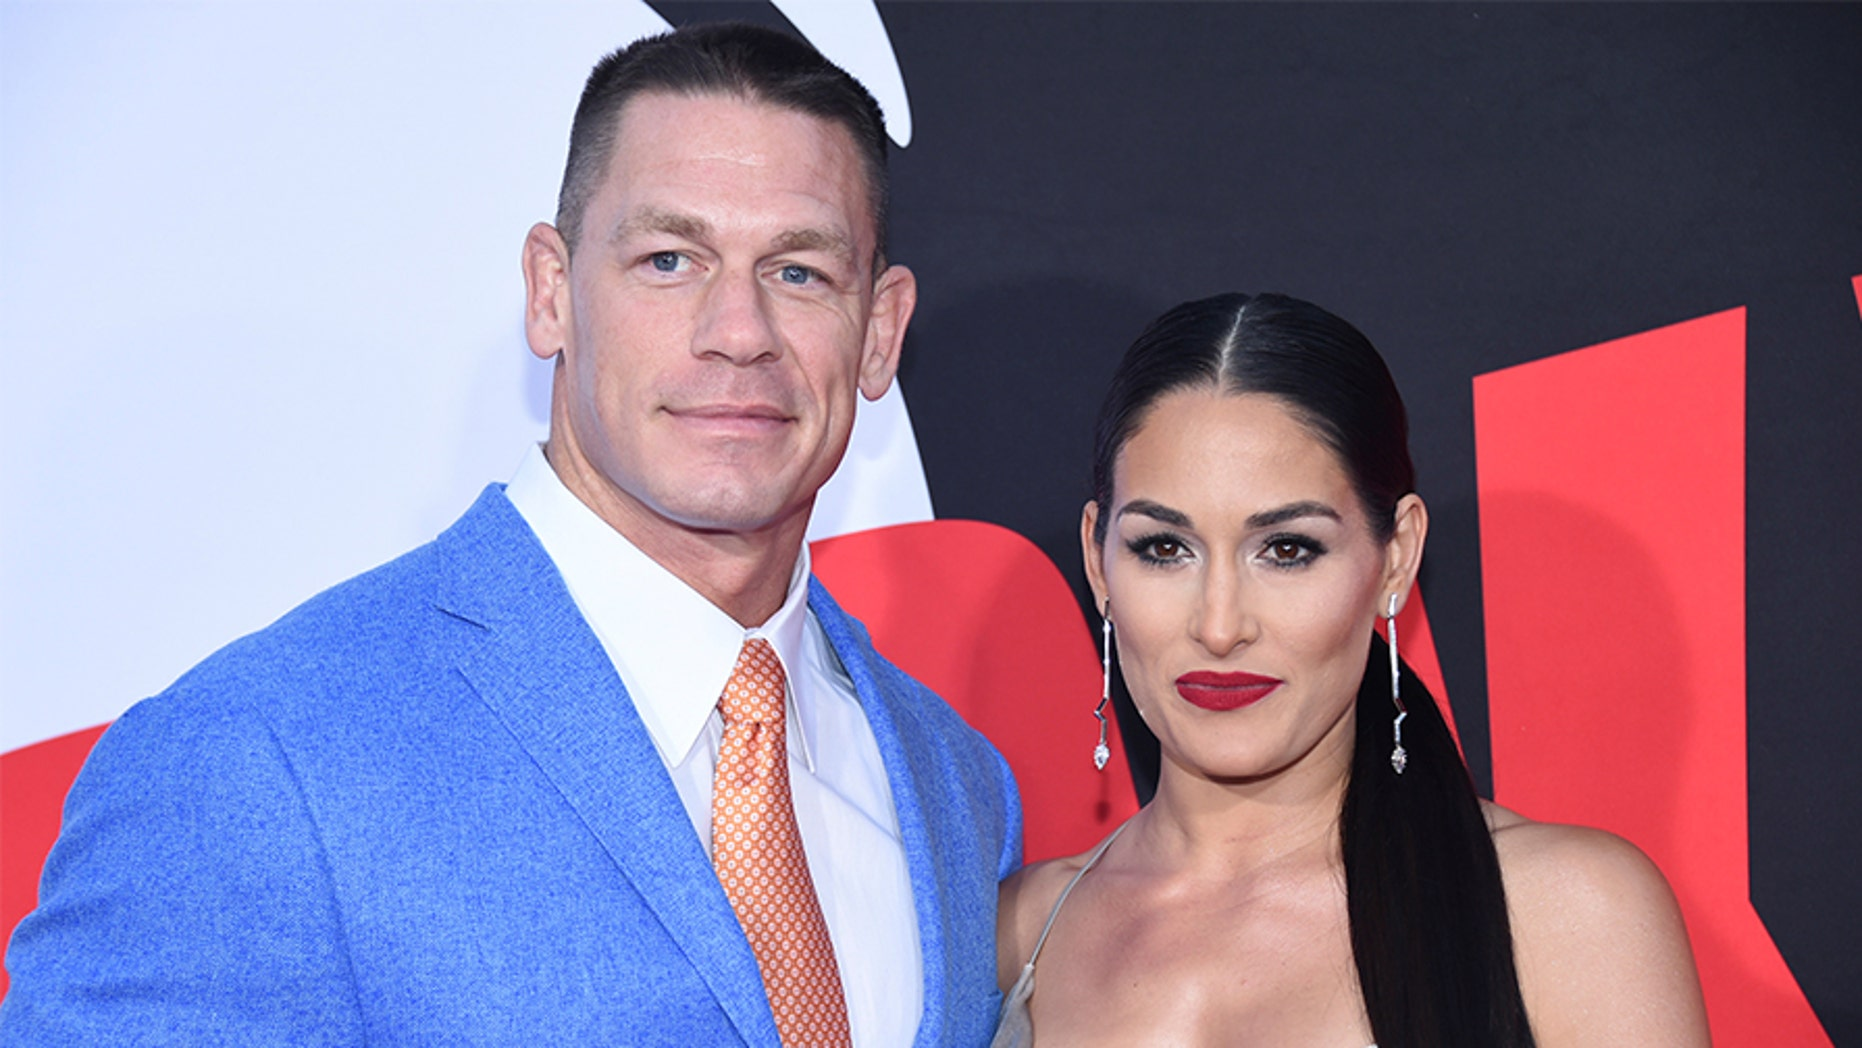 Nikki Bella and John Cena have officially broke up again.